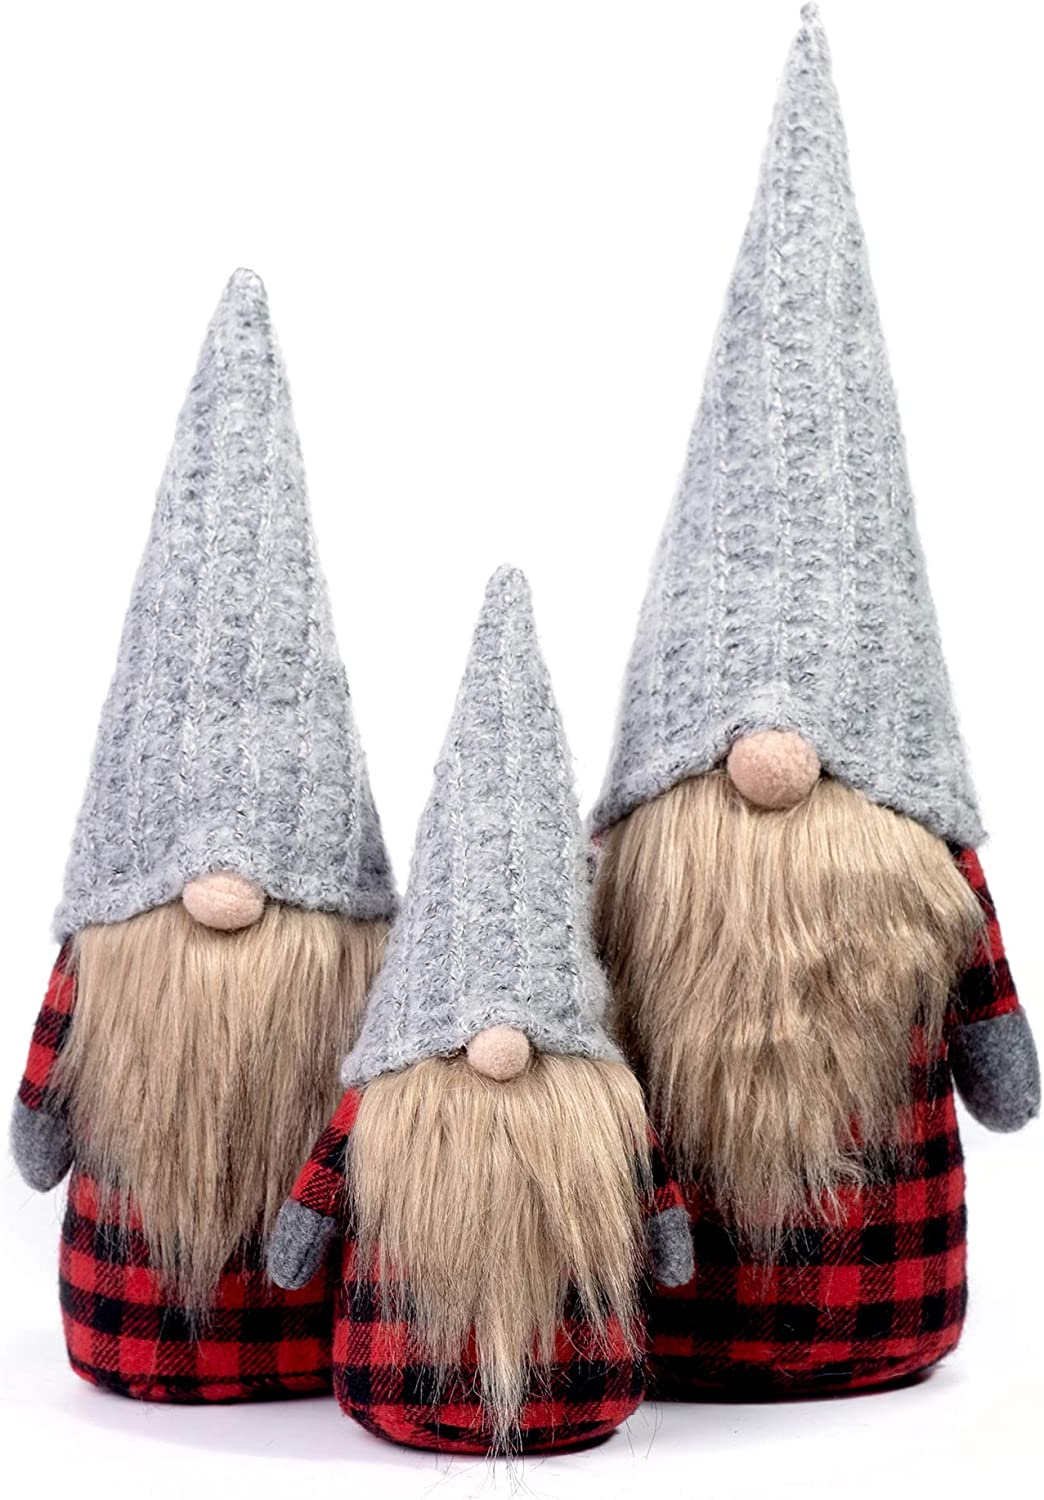 ITOMTE Handmade Swedish Gnome, Scandinavian Tomte, Yule Santa Nisse, Nordic Figurine, Plush Elf Toy, Winter Table Ornament, Home Christmas Decorations, Holiday Presents - Family Pack of 3, Red Tartan